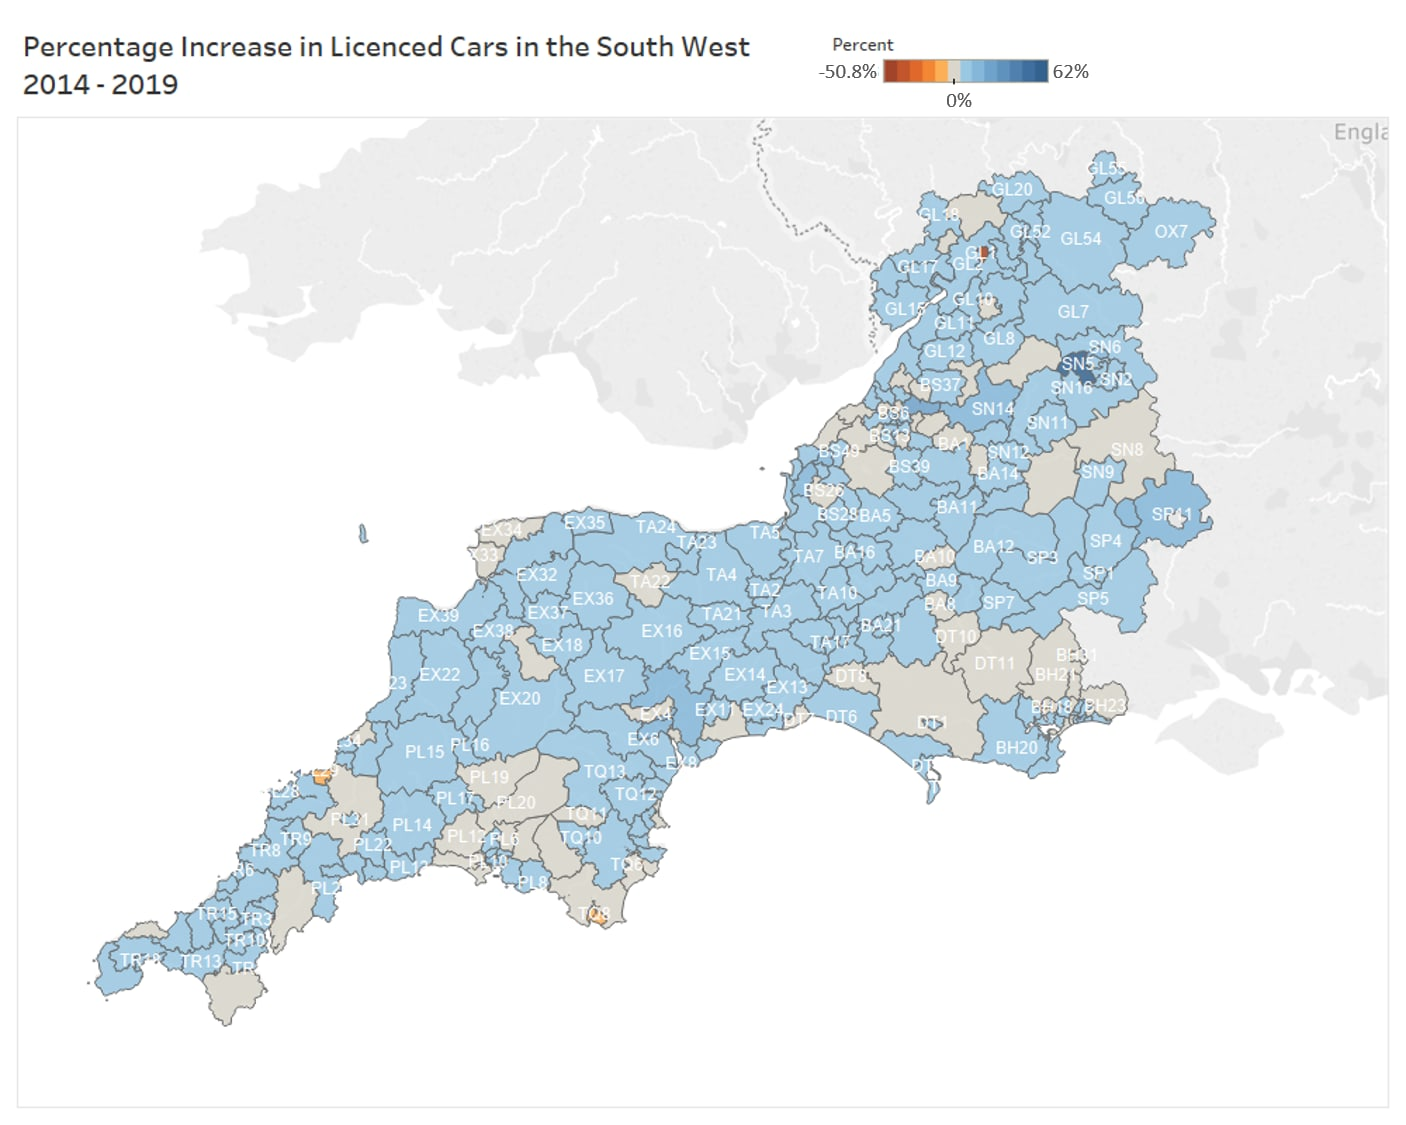 Heatmap showing the percentage change in licenced cars in the South West